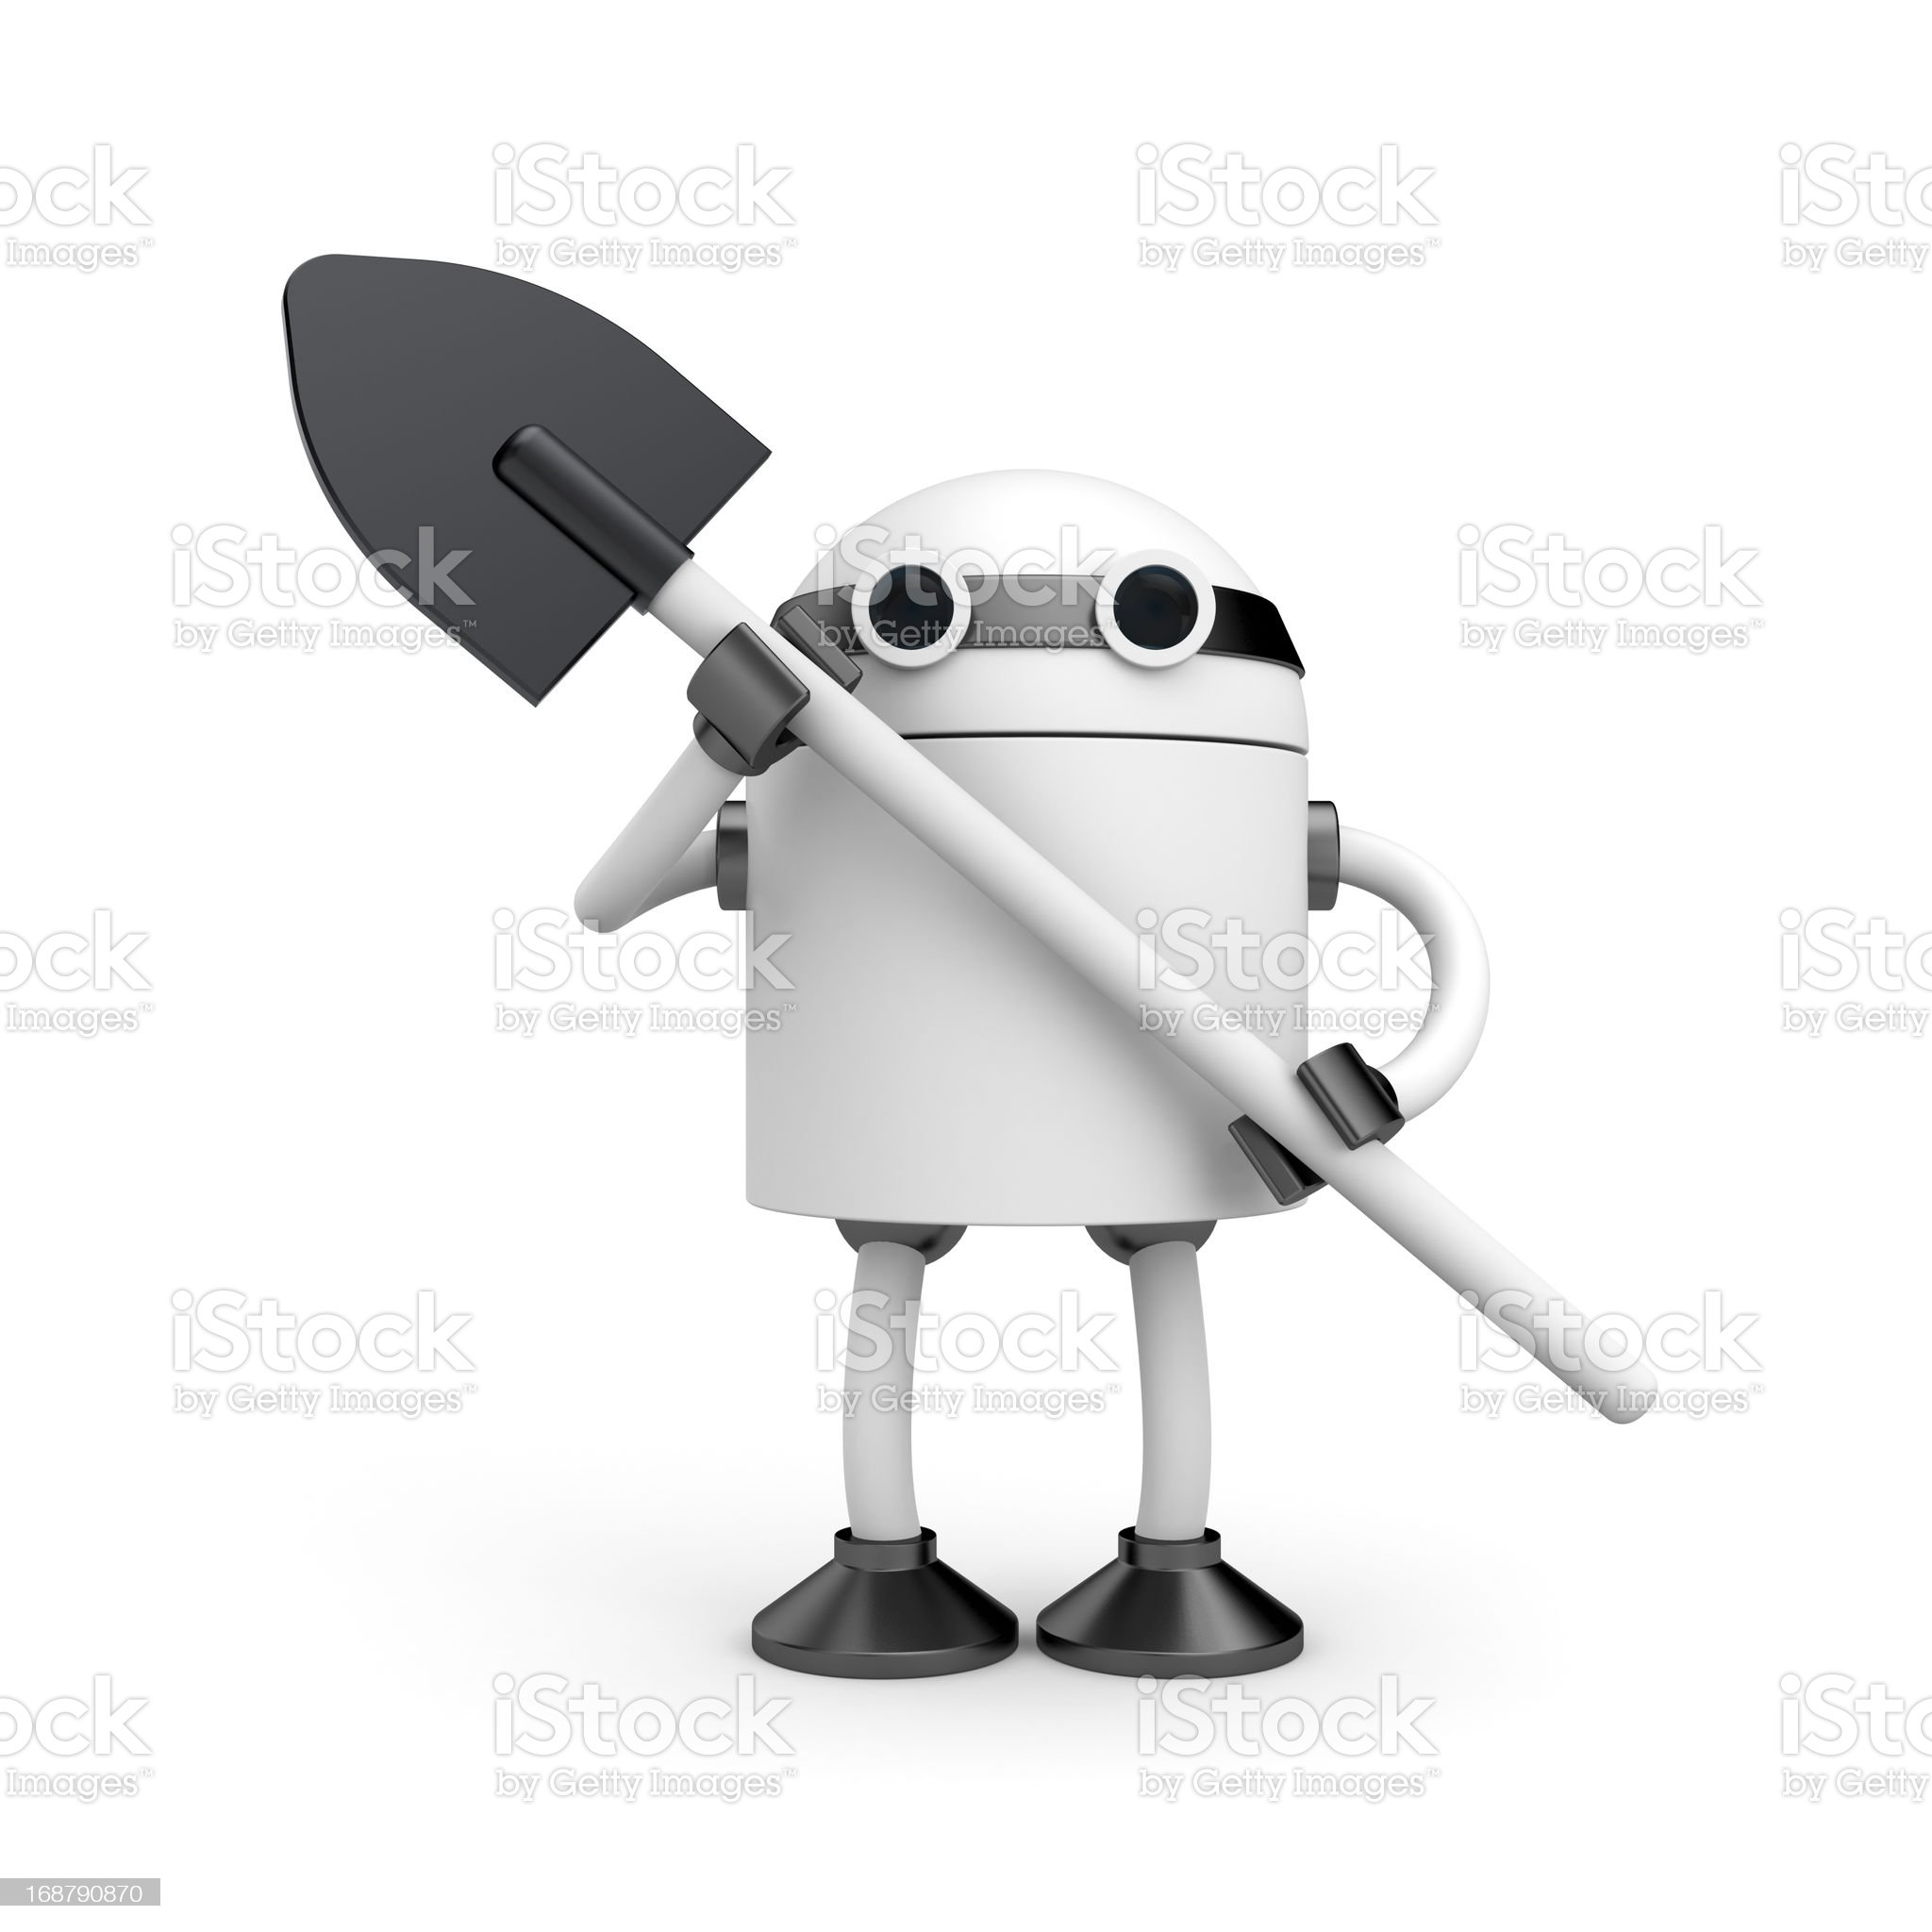 Robot with shovel royalty-free stock vector art